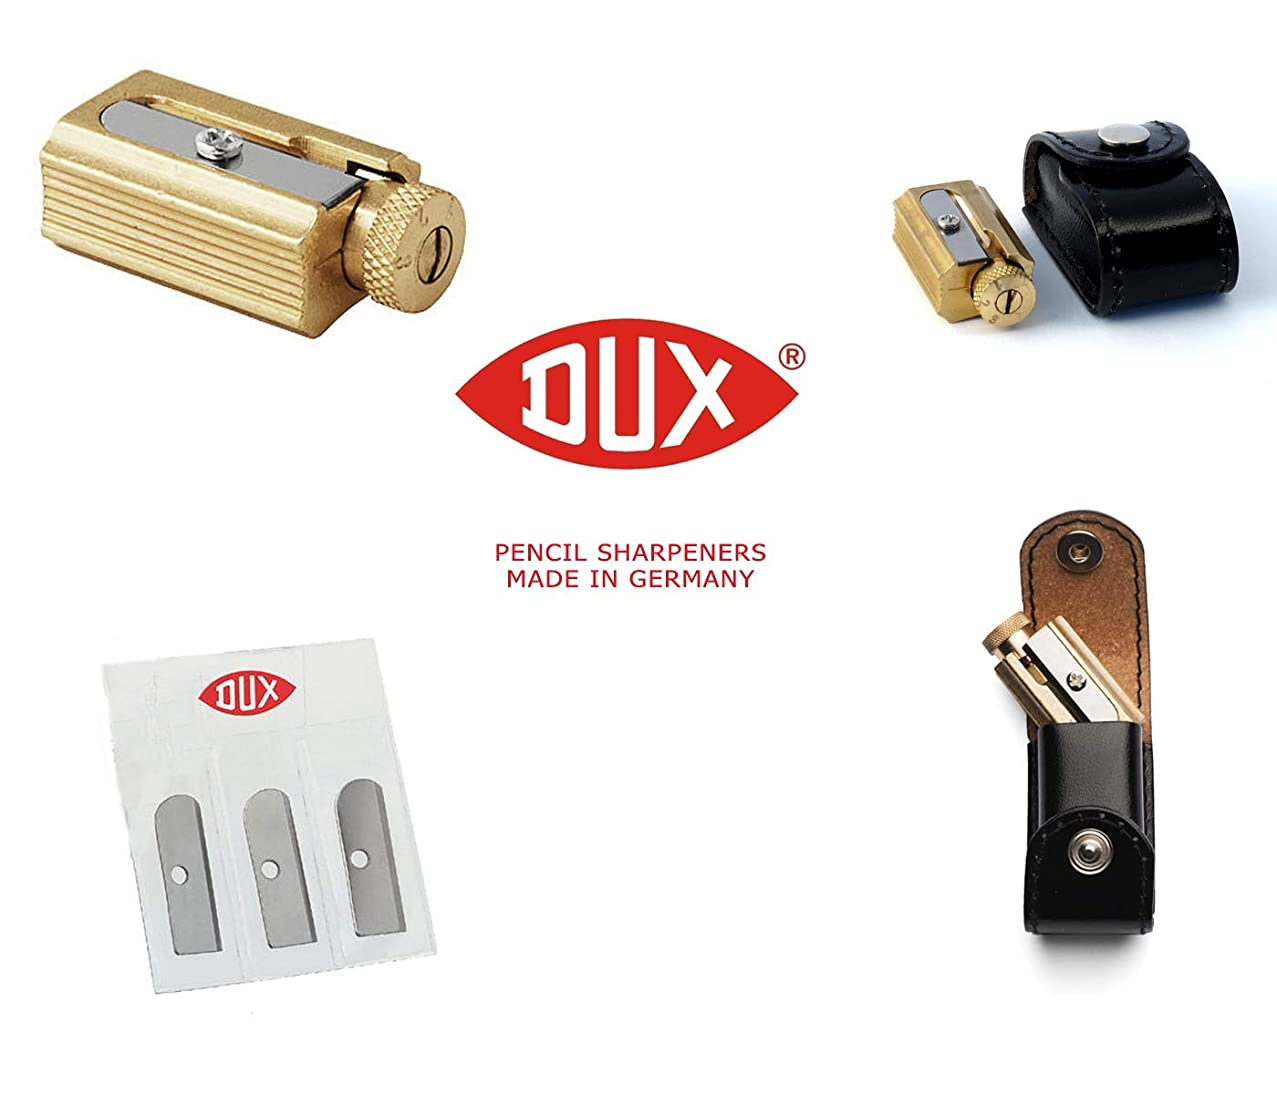 DUX Legendary Adjustable Pencil Sharpener + 3 Replacement Blades - Brass in a Genuine Leather case - Made in Germany